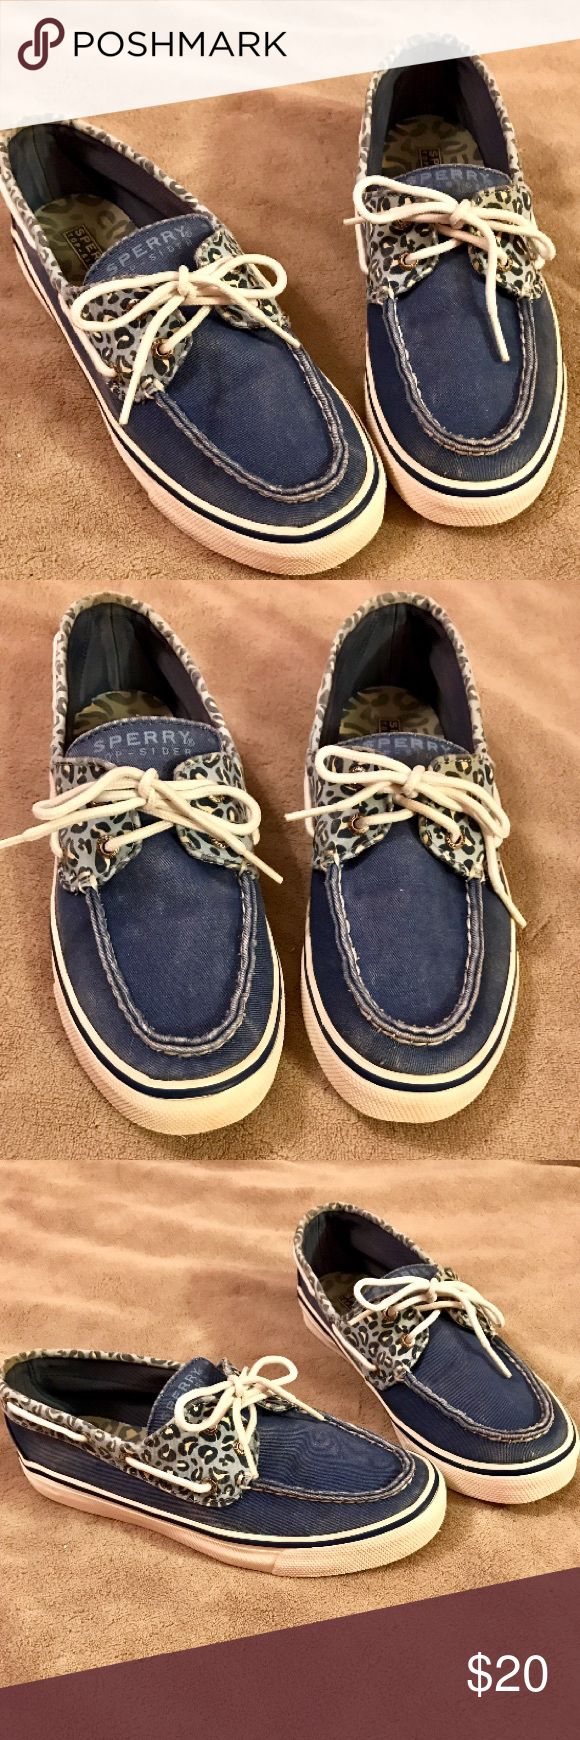 Blue Leopard Sperry Boat Shoes Blue Leopard Sperry Top-sider Boat Shoes Size 7.5! Still in good condition and has jean-looking material Sperry Top-Sider Shoes Flats & Loafers